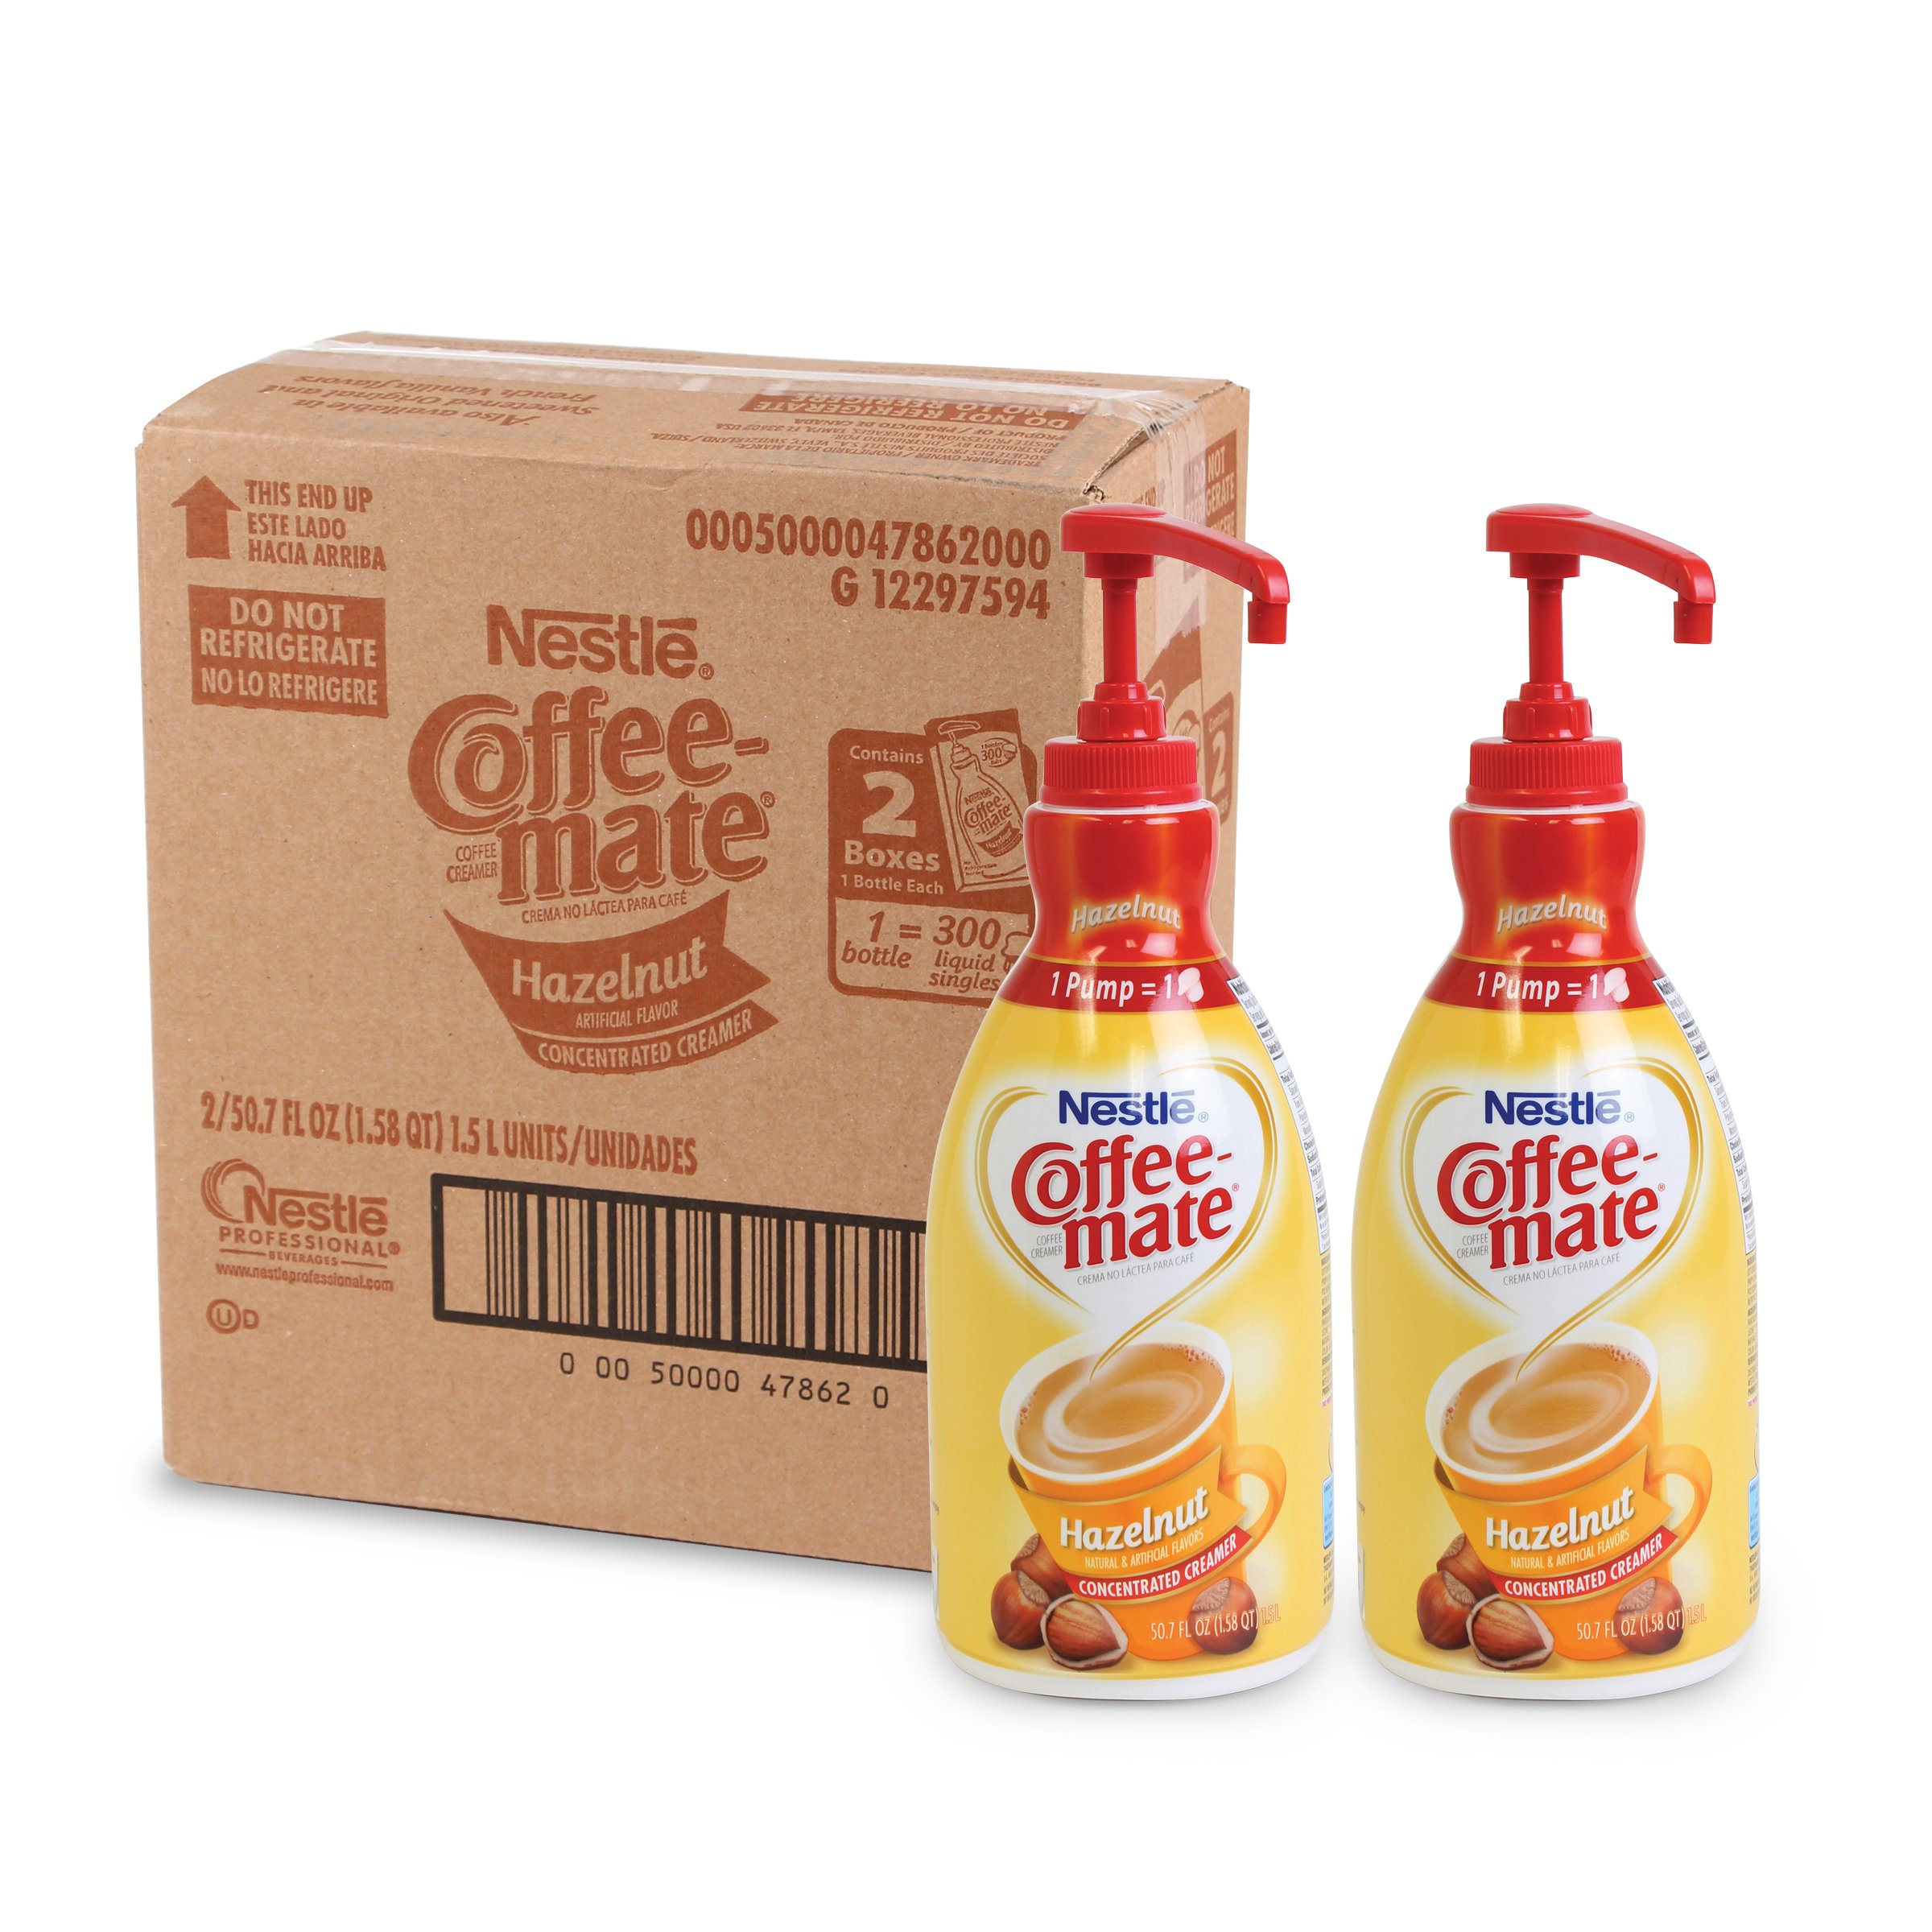 Nestle Coffee-mate Coffee Creamer, Hazelnut, 1.5L liquid pump bottle, Pack of 2 by Nestle Coffee Mate (Image #1)